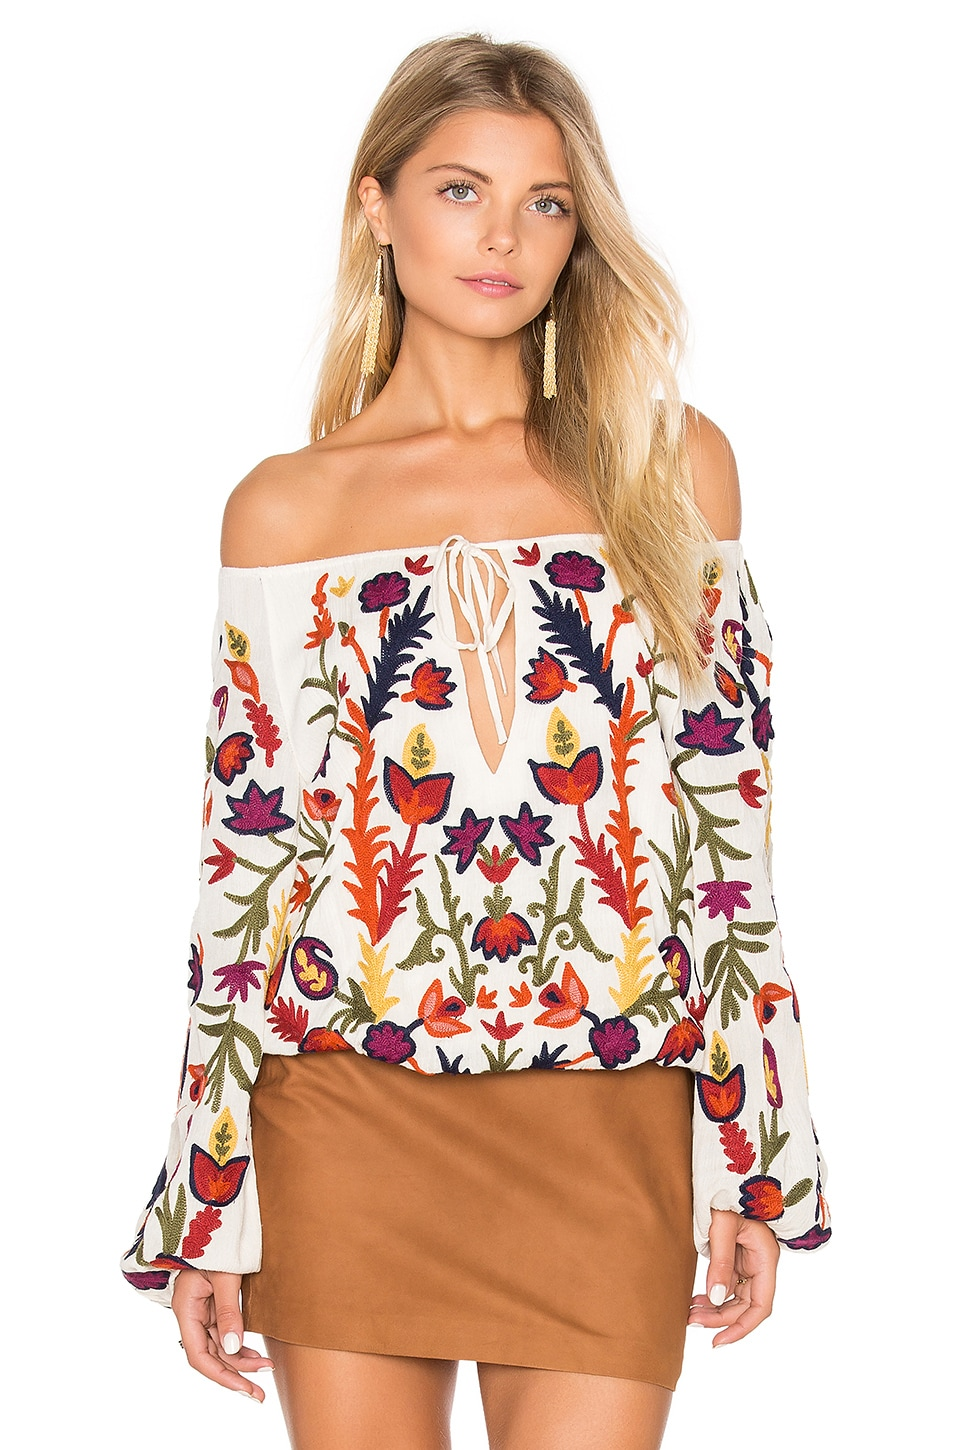 Alice + Olivia Naya Embroidered Peasant Top in Cream & Multi